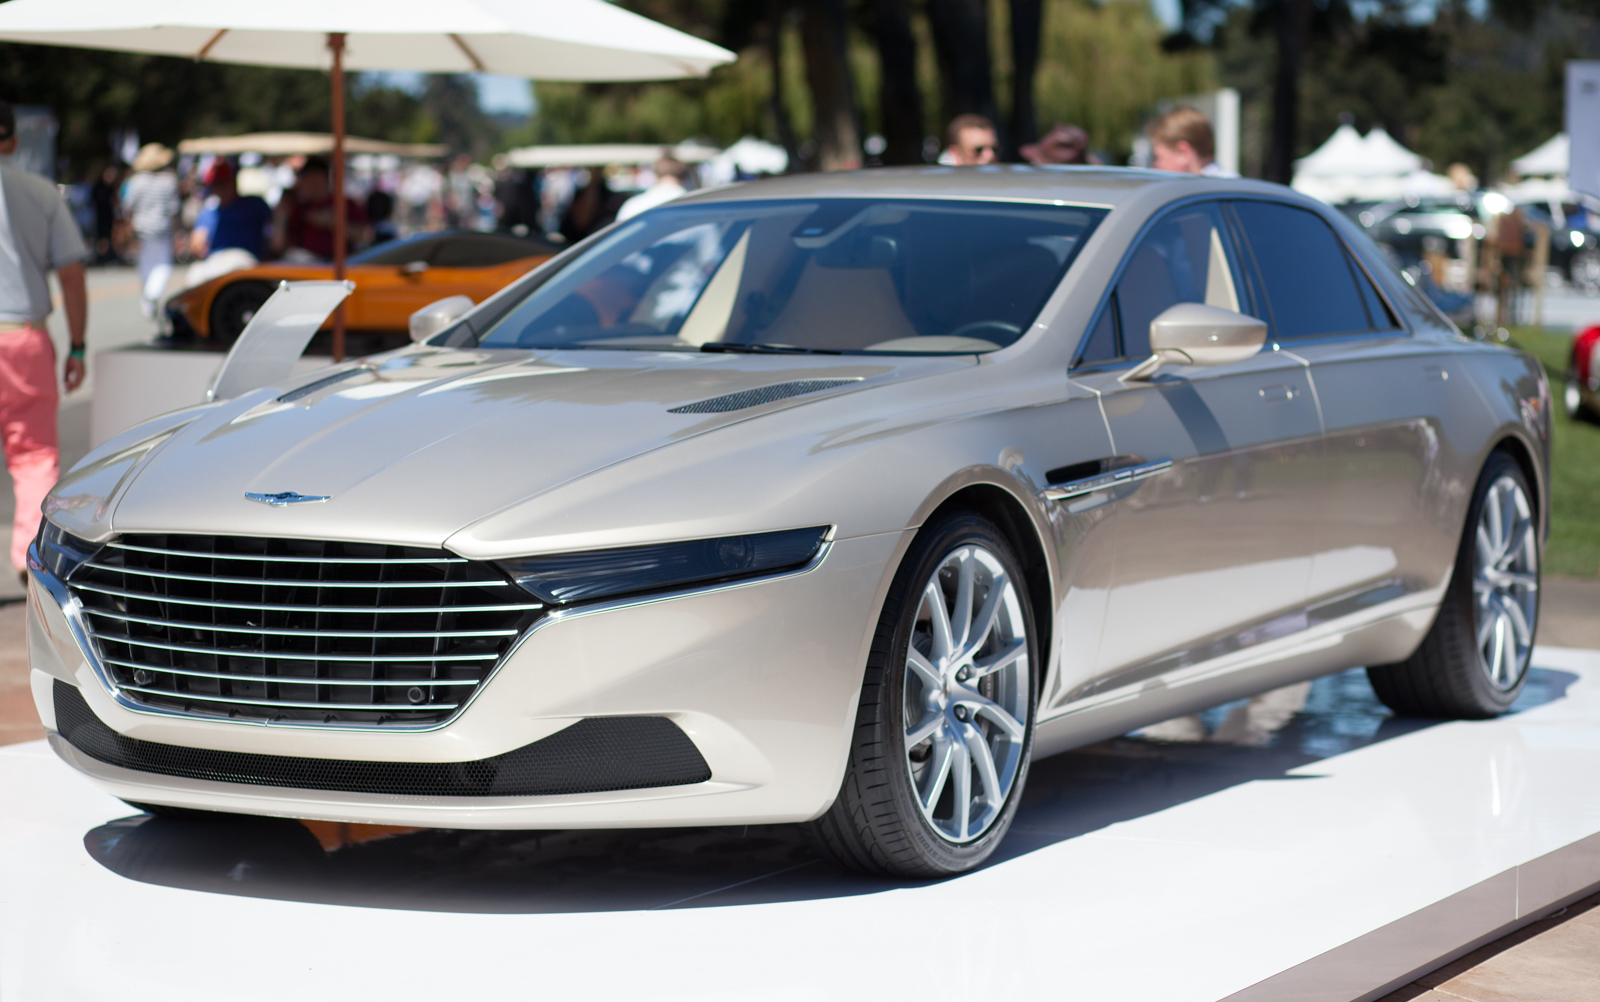 aston martin lagonda taraf takes a bow at pebble beach. Black Bedroom Furniture Sets. Home Design Ideas